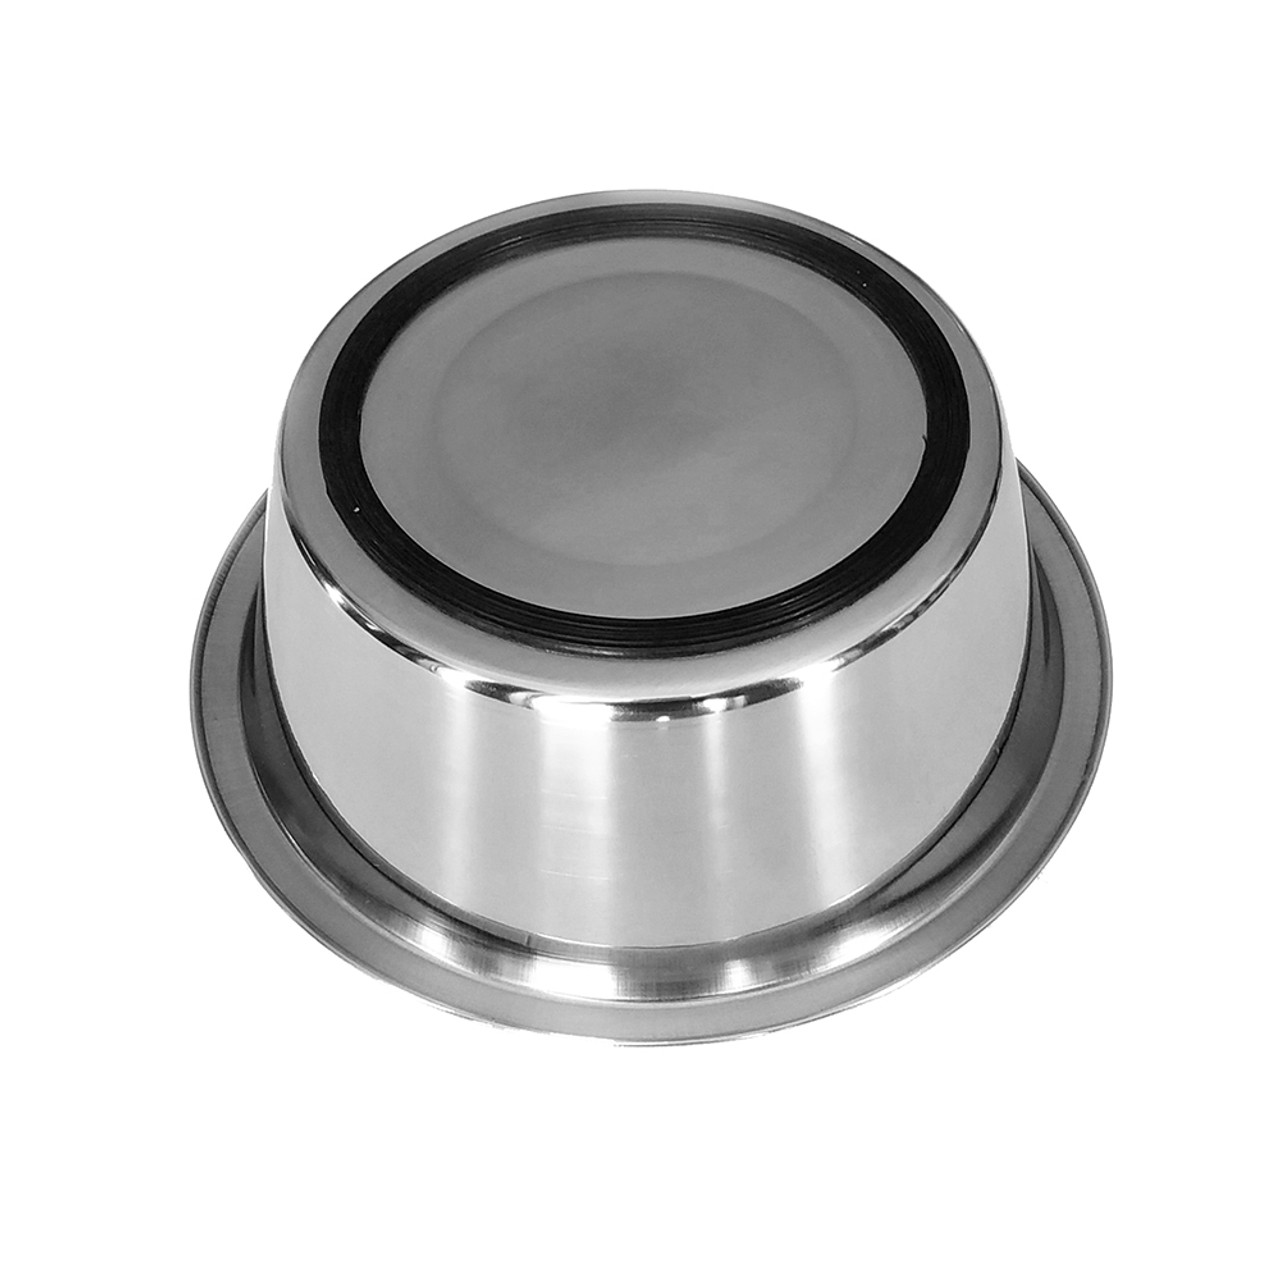 Dineasty Stainless Steel Pet Bowl With Rubber Ring Base